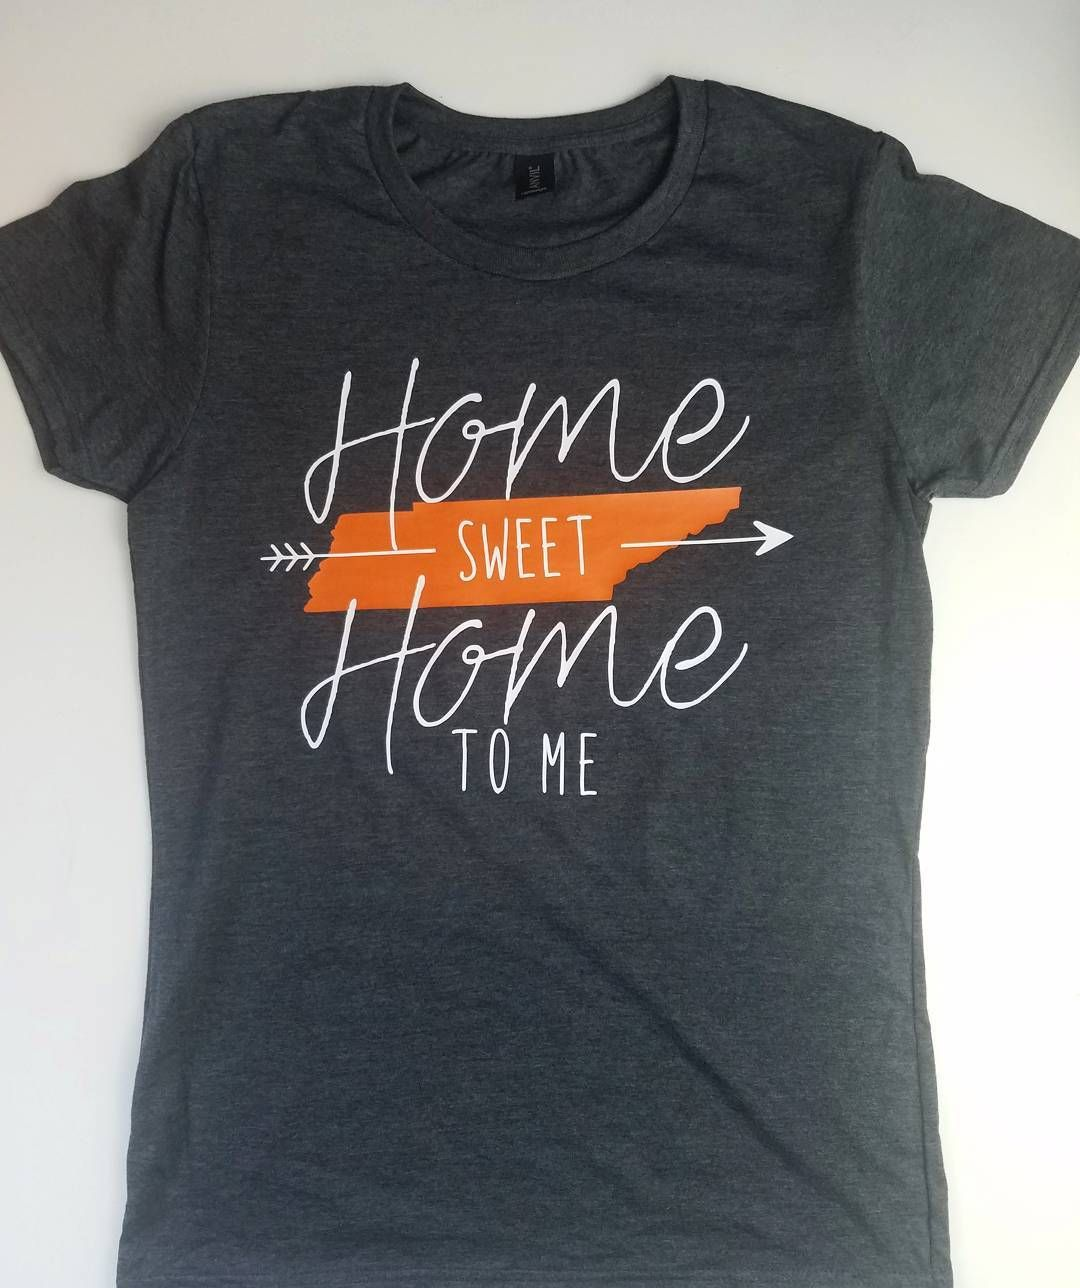 badccf4e Tennessee home sweet home to me, rocky top, TN, Vols, shirt. Visit Suite E  Designs on Etsy.